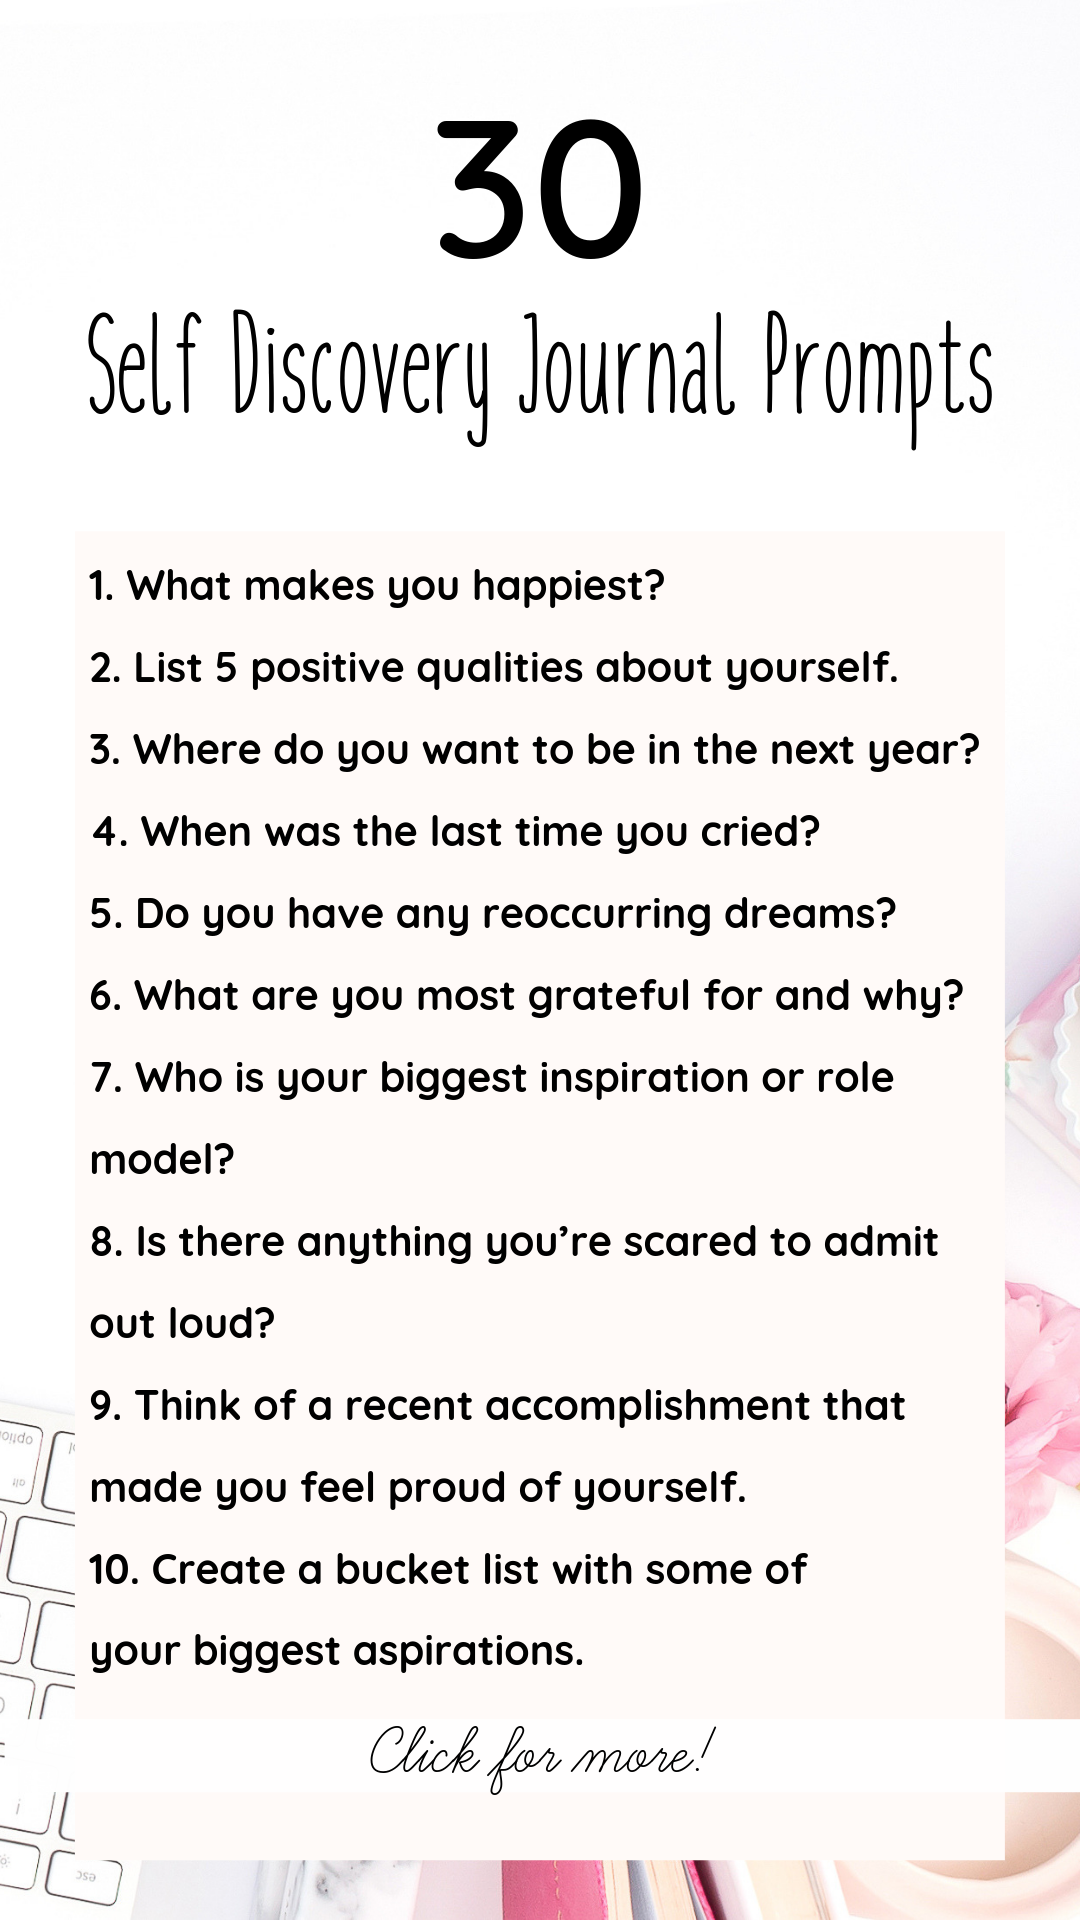 Keeping a journal comes with many amazing benefits such as stress level management, mindfulness, and an overall boost in self-esteem and mood! Here are just a few reasons to start journaling, plus 30 journal prompts for self discovery!